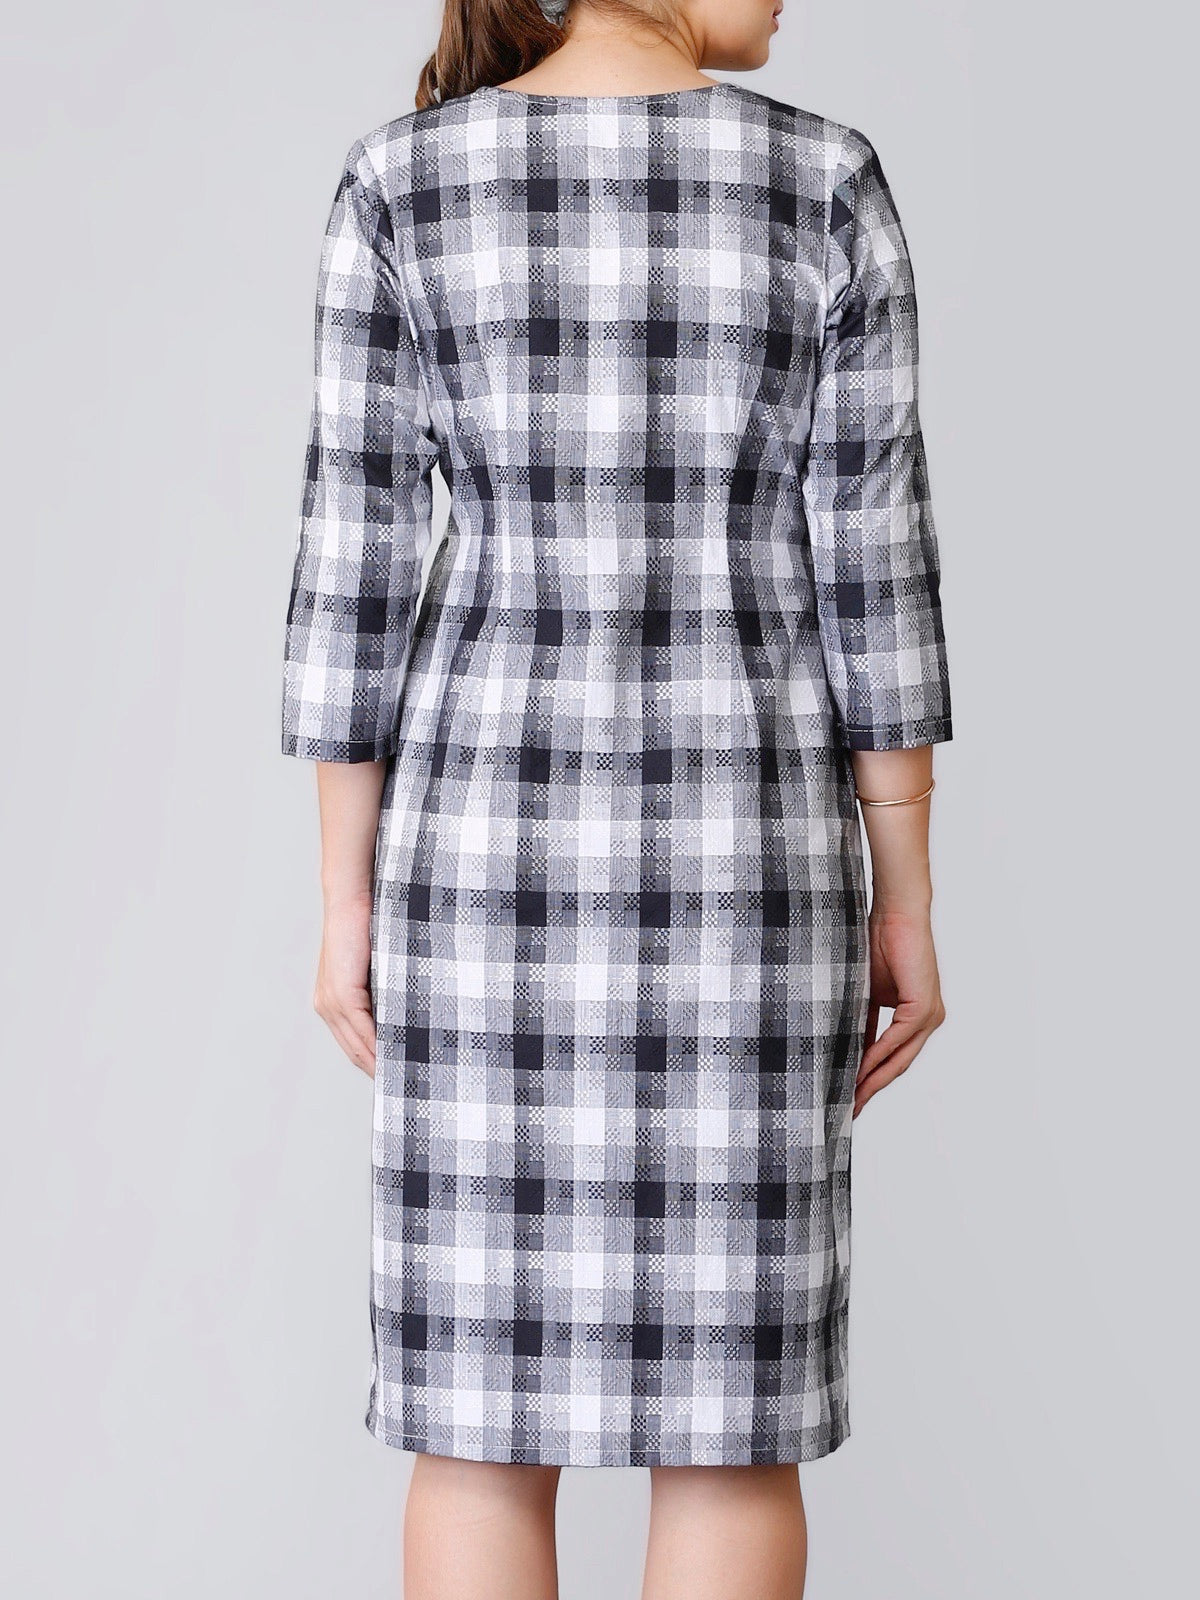 Textured Plaid Straight Fit Dress - Black